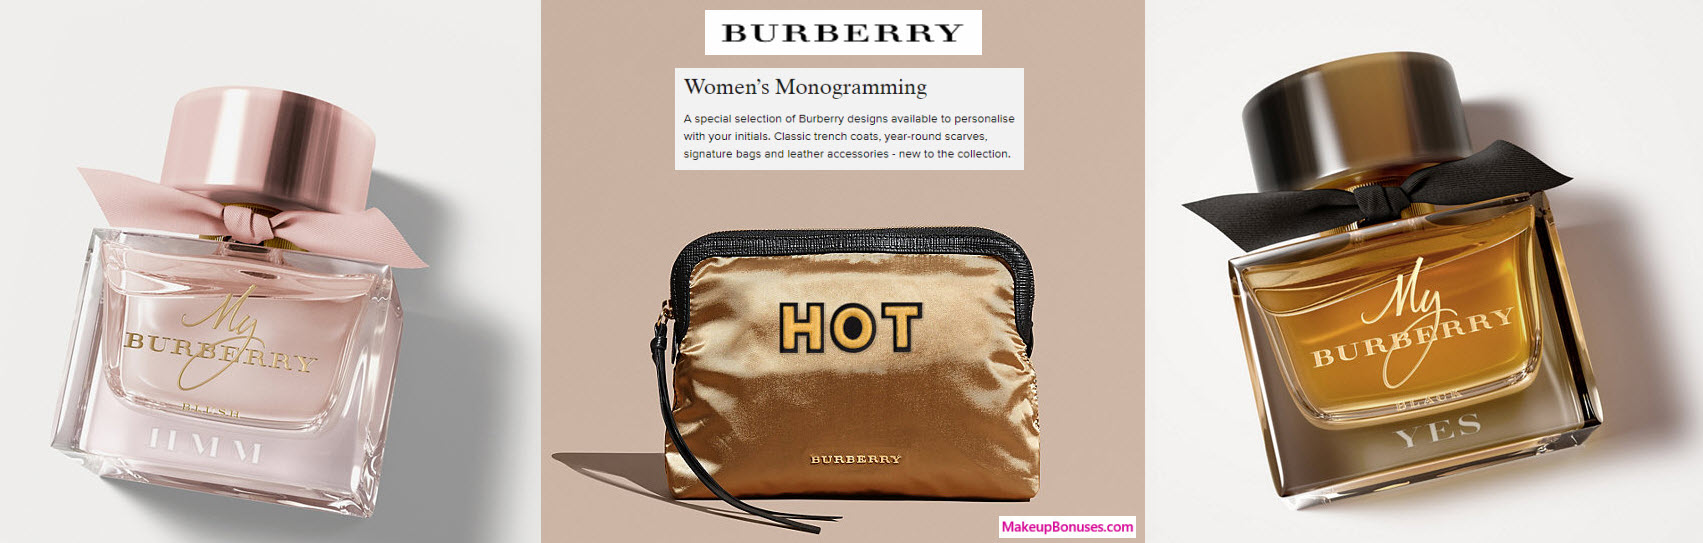 2017 Burberry - MakeupBonuses